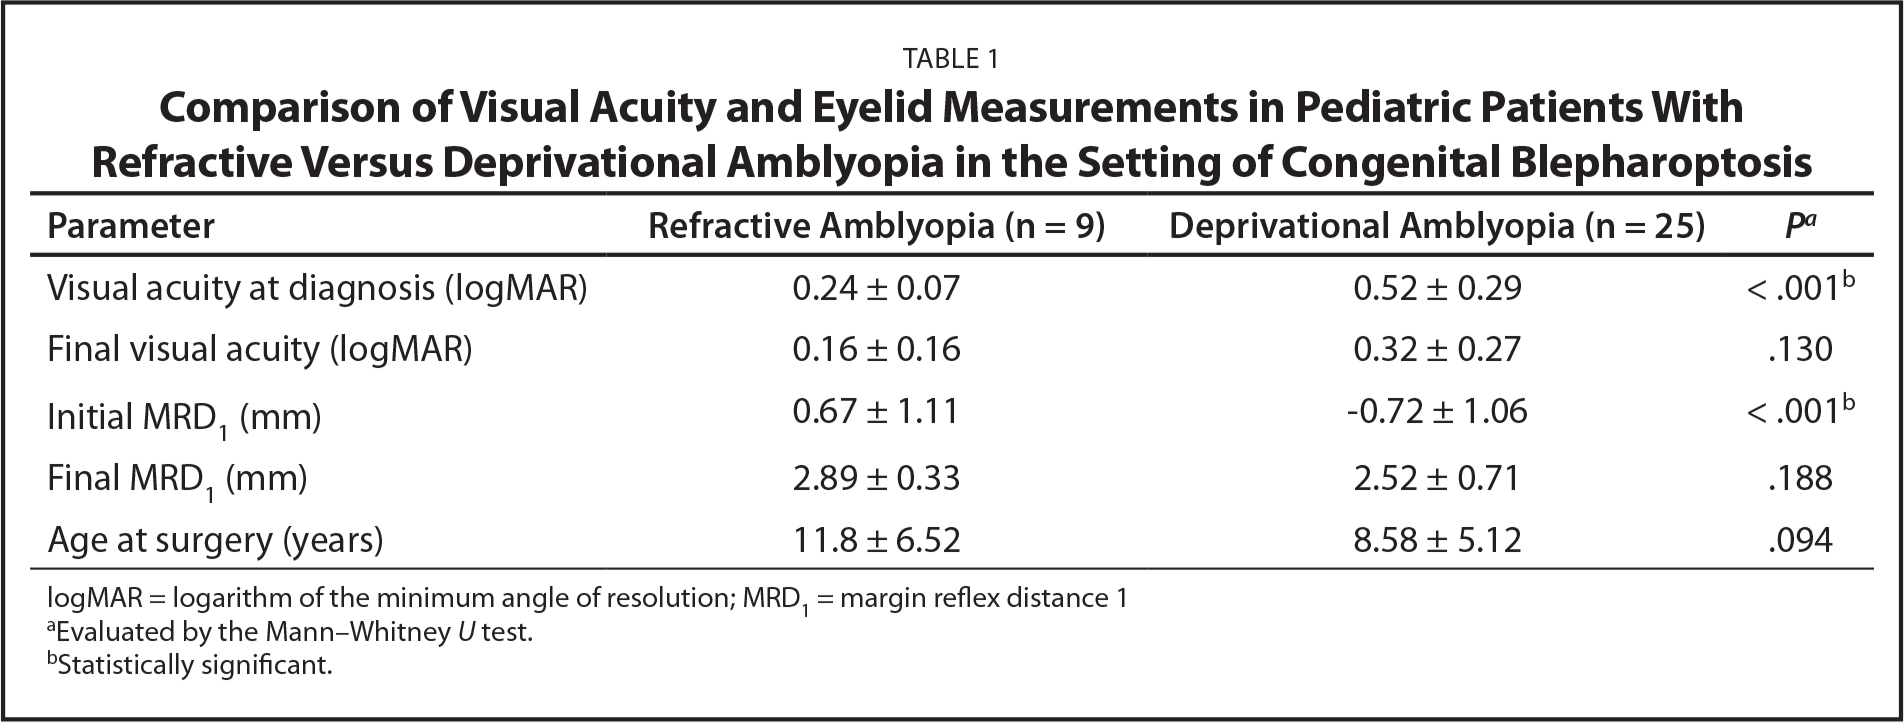 Comparison of Visual Acuity and Eyelid Measurements in Pediatric Patients With Refractive Versus Deprivational Amblyopia in the Setting of Congenital Blepharoptosis